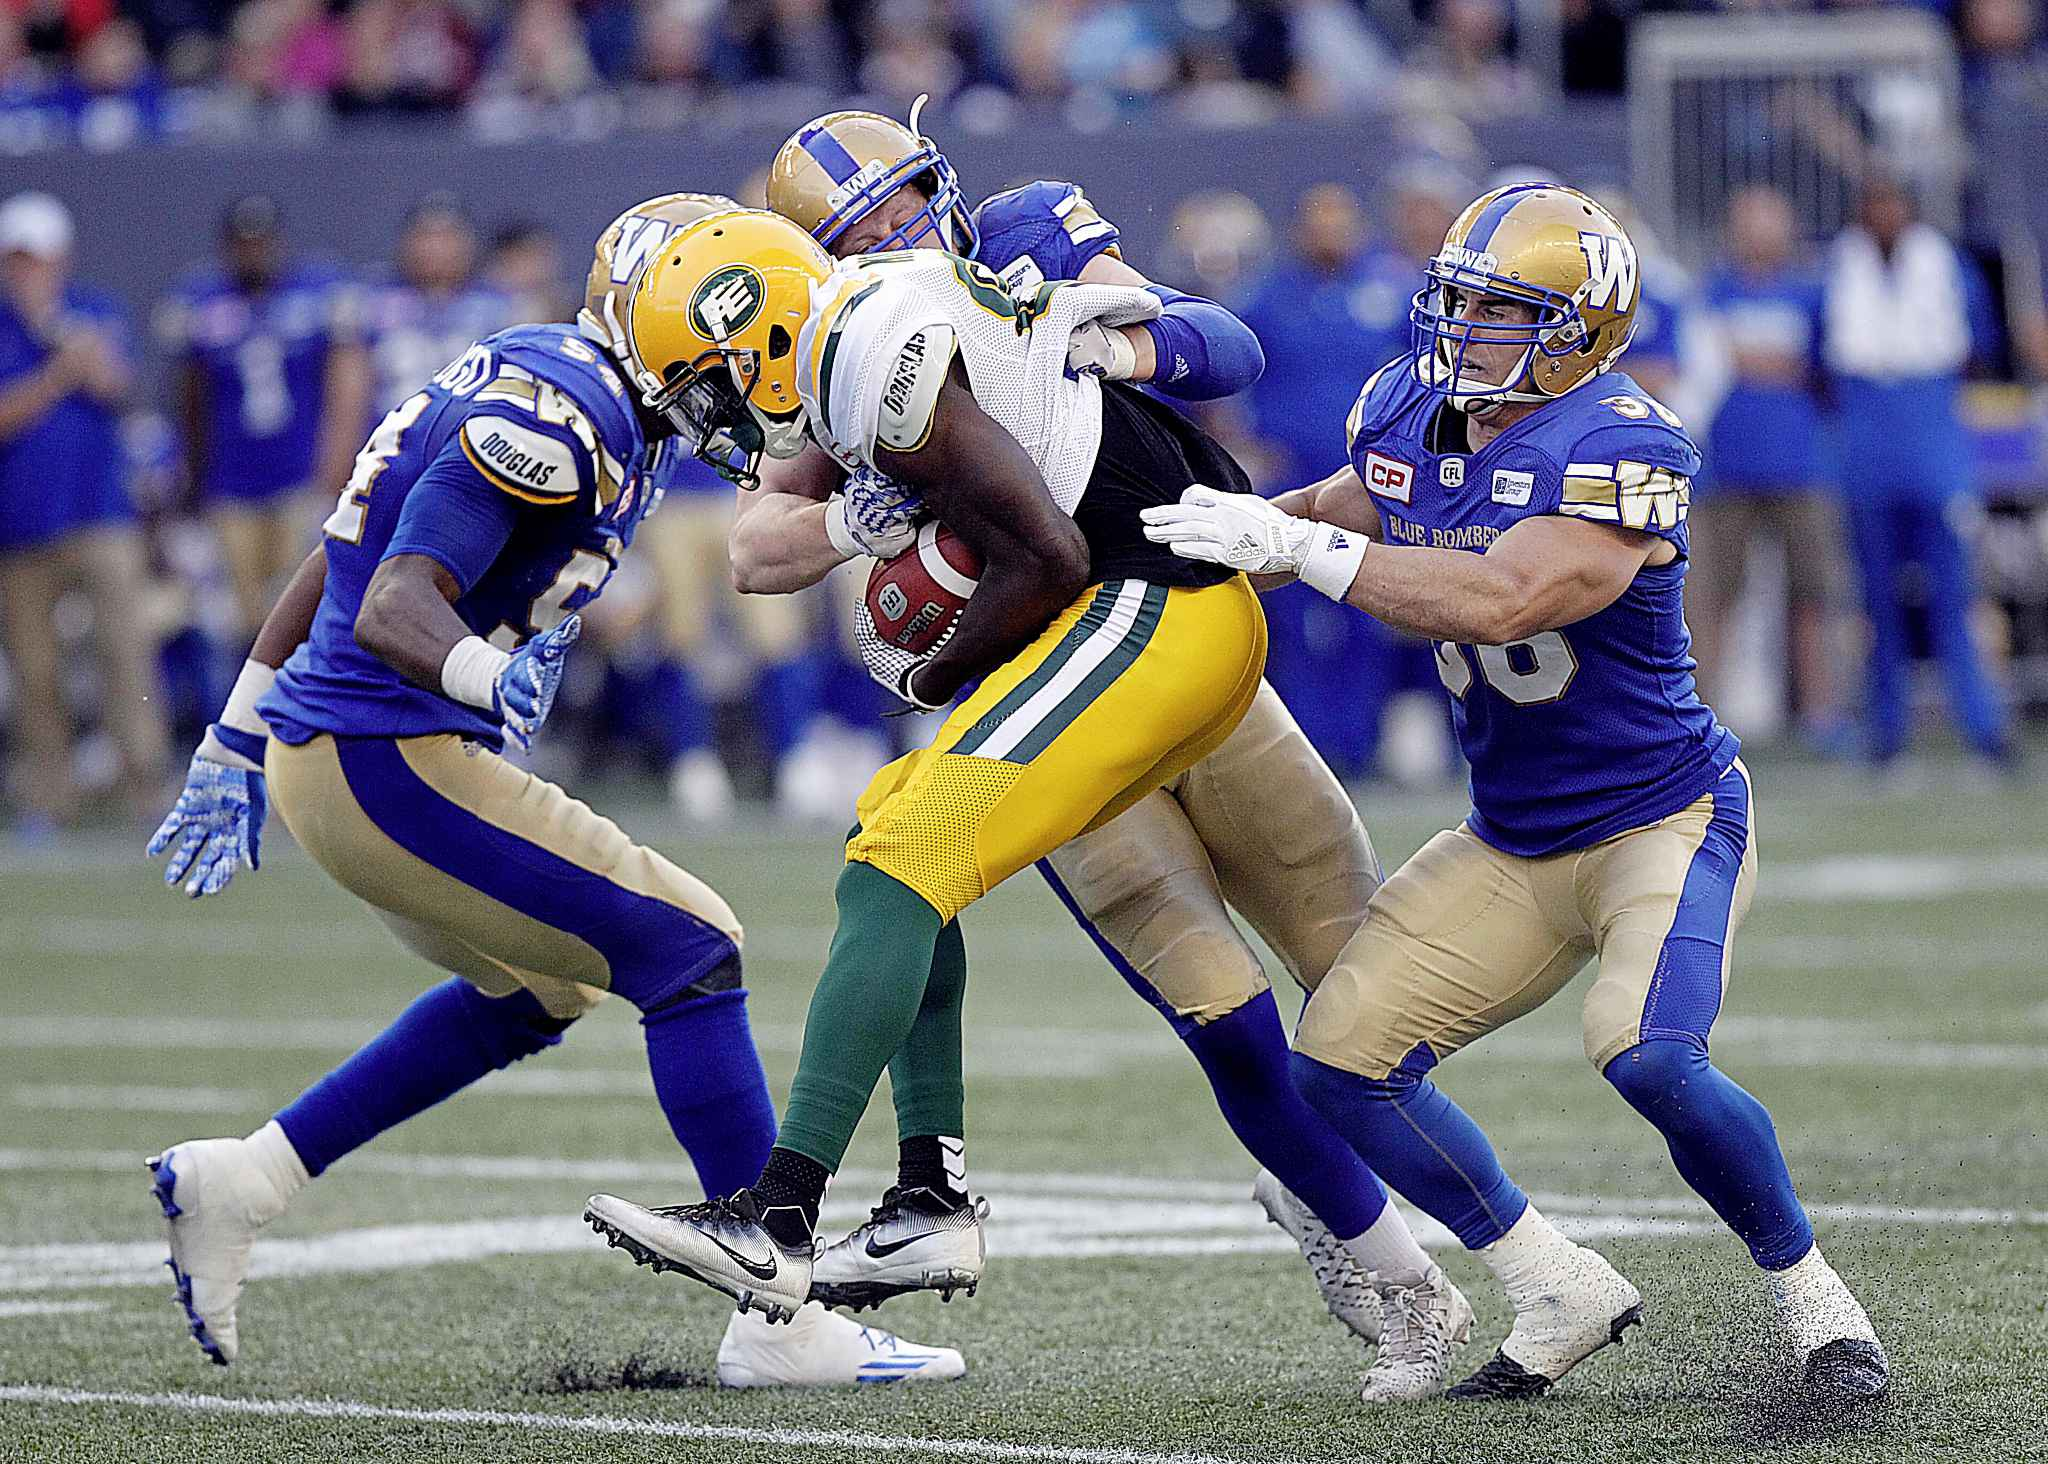 Edmonton Eskimos' Bryant Mitchell is gang tackled by, from left to right, Winnipeg Blue Bombers' Tristan Okpalaugo, Sam Hurl and Ian Wild Thursday evening at Investors Group Field.